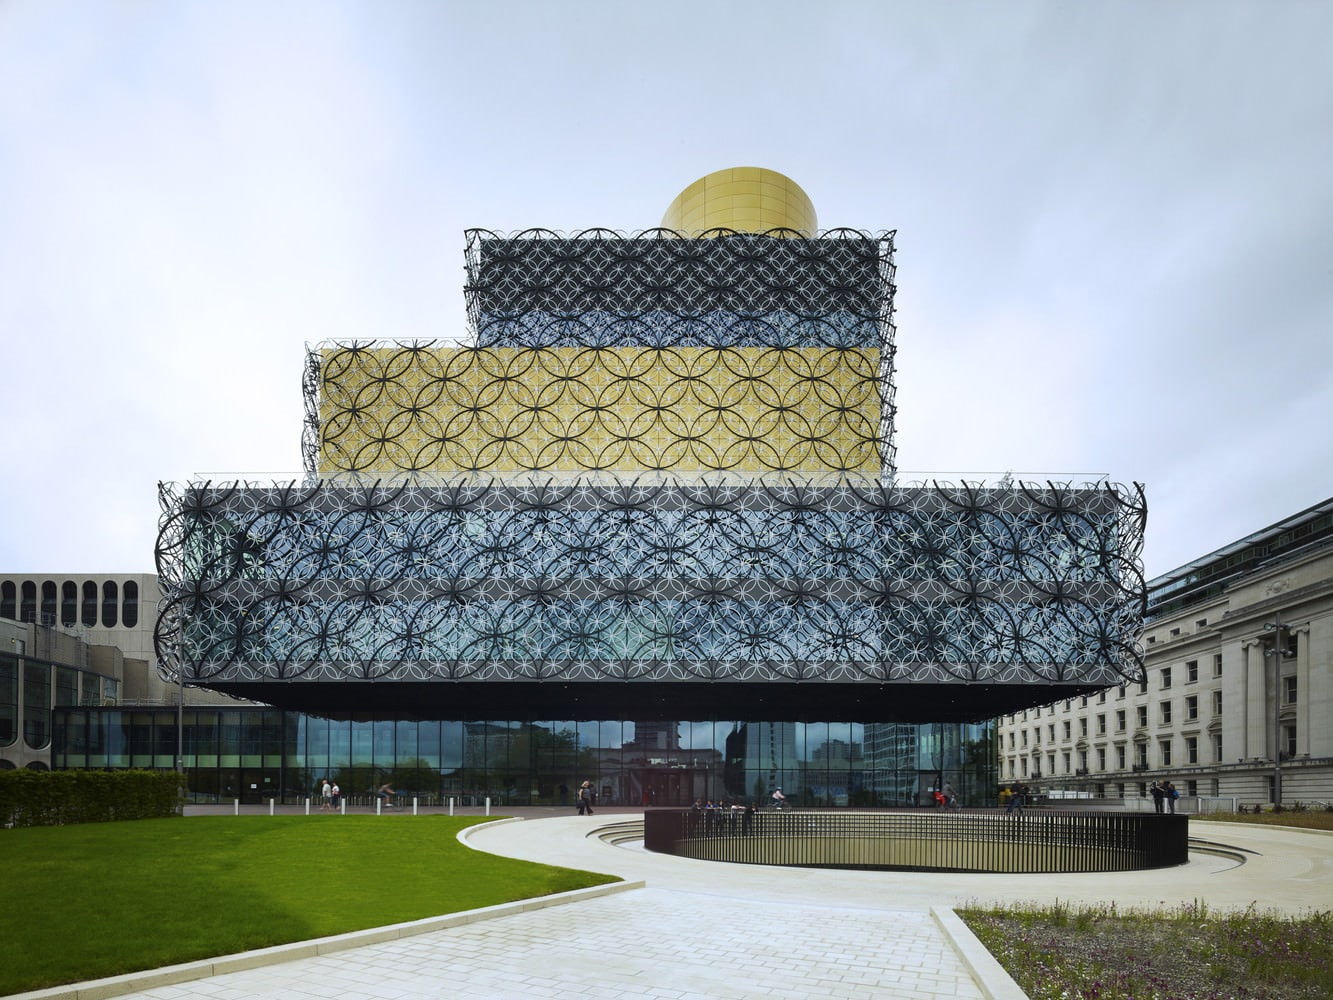 Library of Birmingham by Mecanoo, Photo by Christian Richters